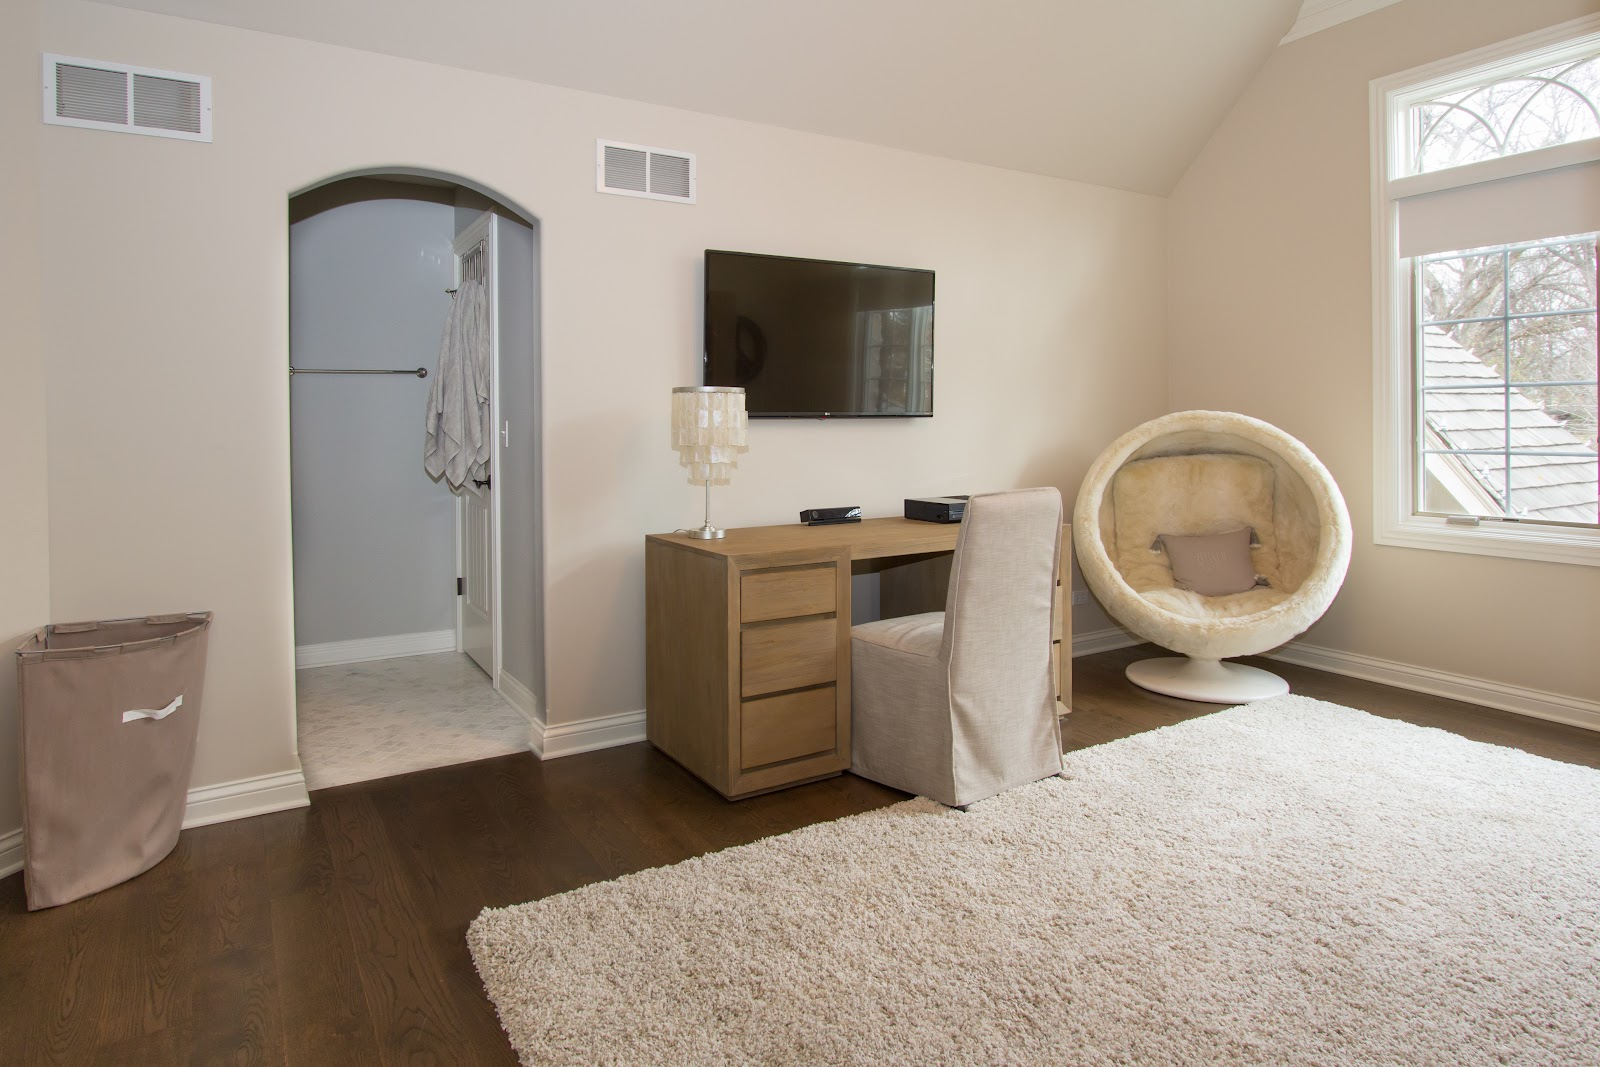 Bedroom suite with television, desk and bathroom.